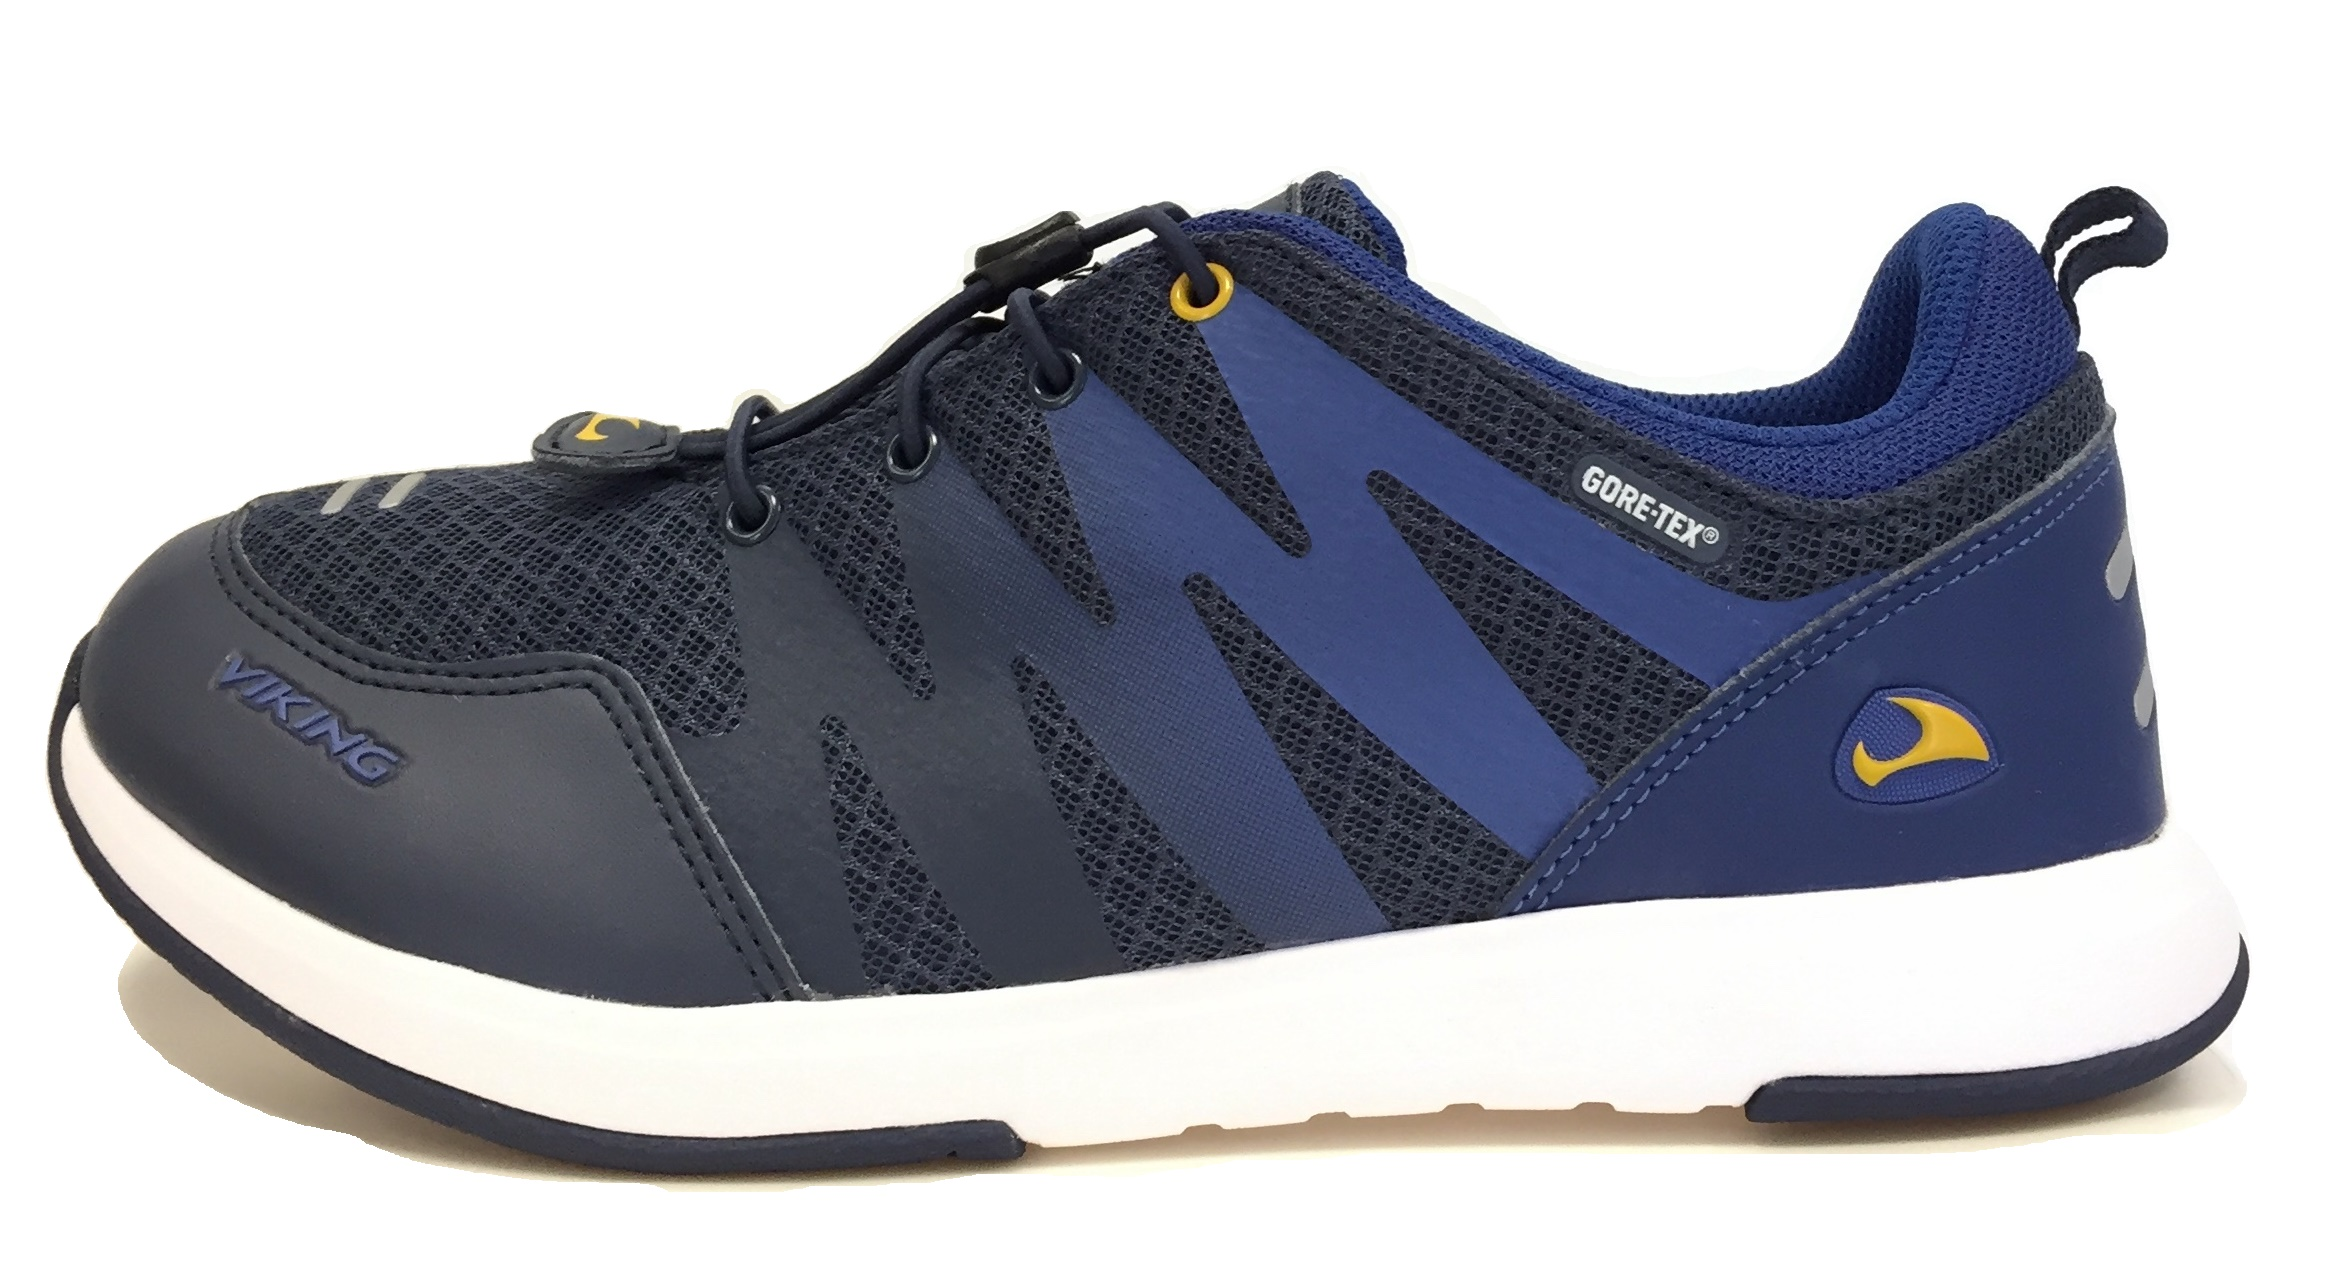 Obuv Viking Bislett II GTX 3-49110-576 Navy/Dark Blue